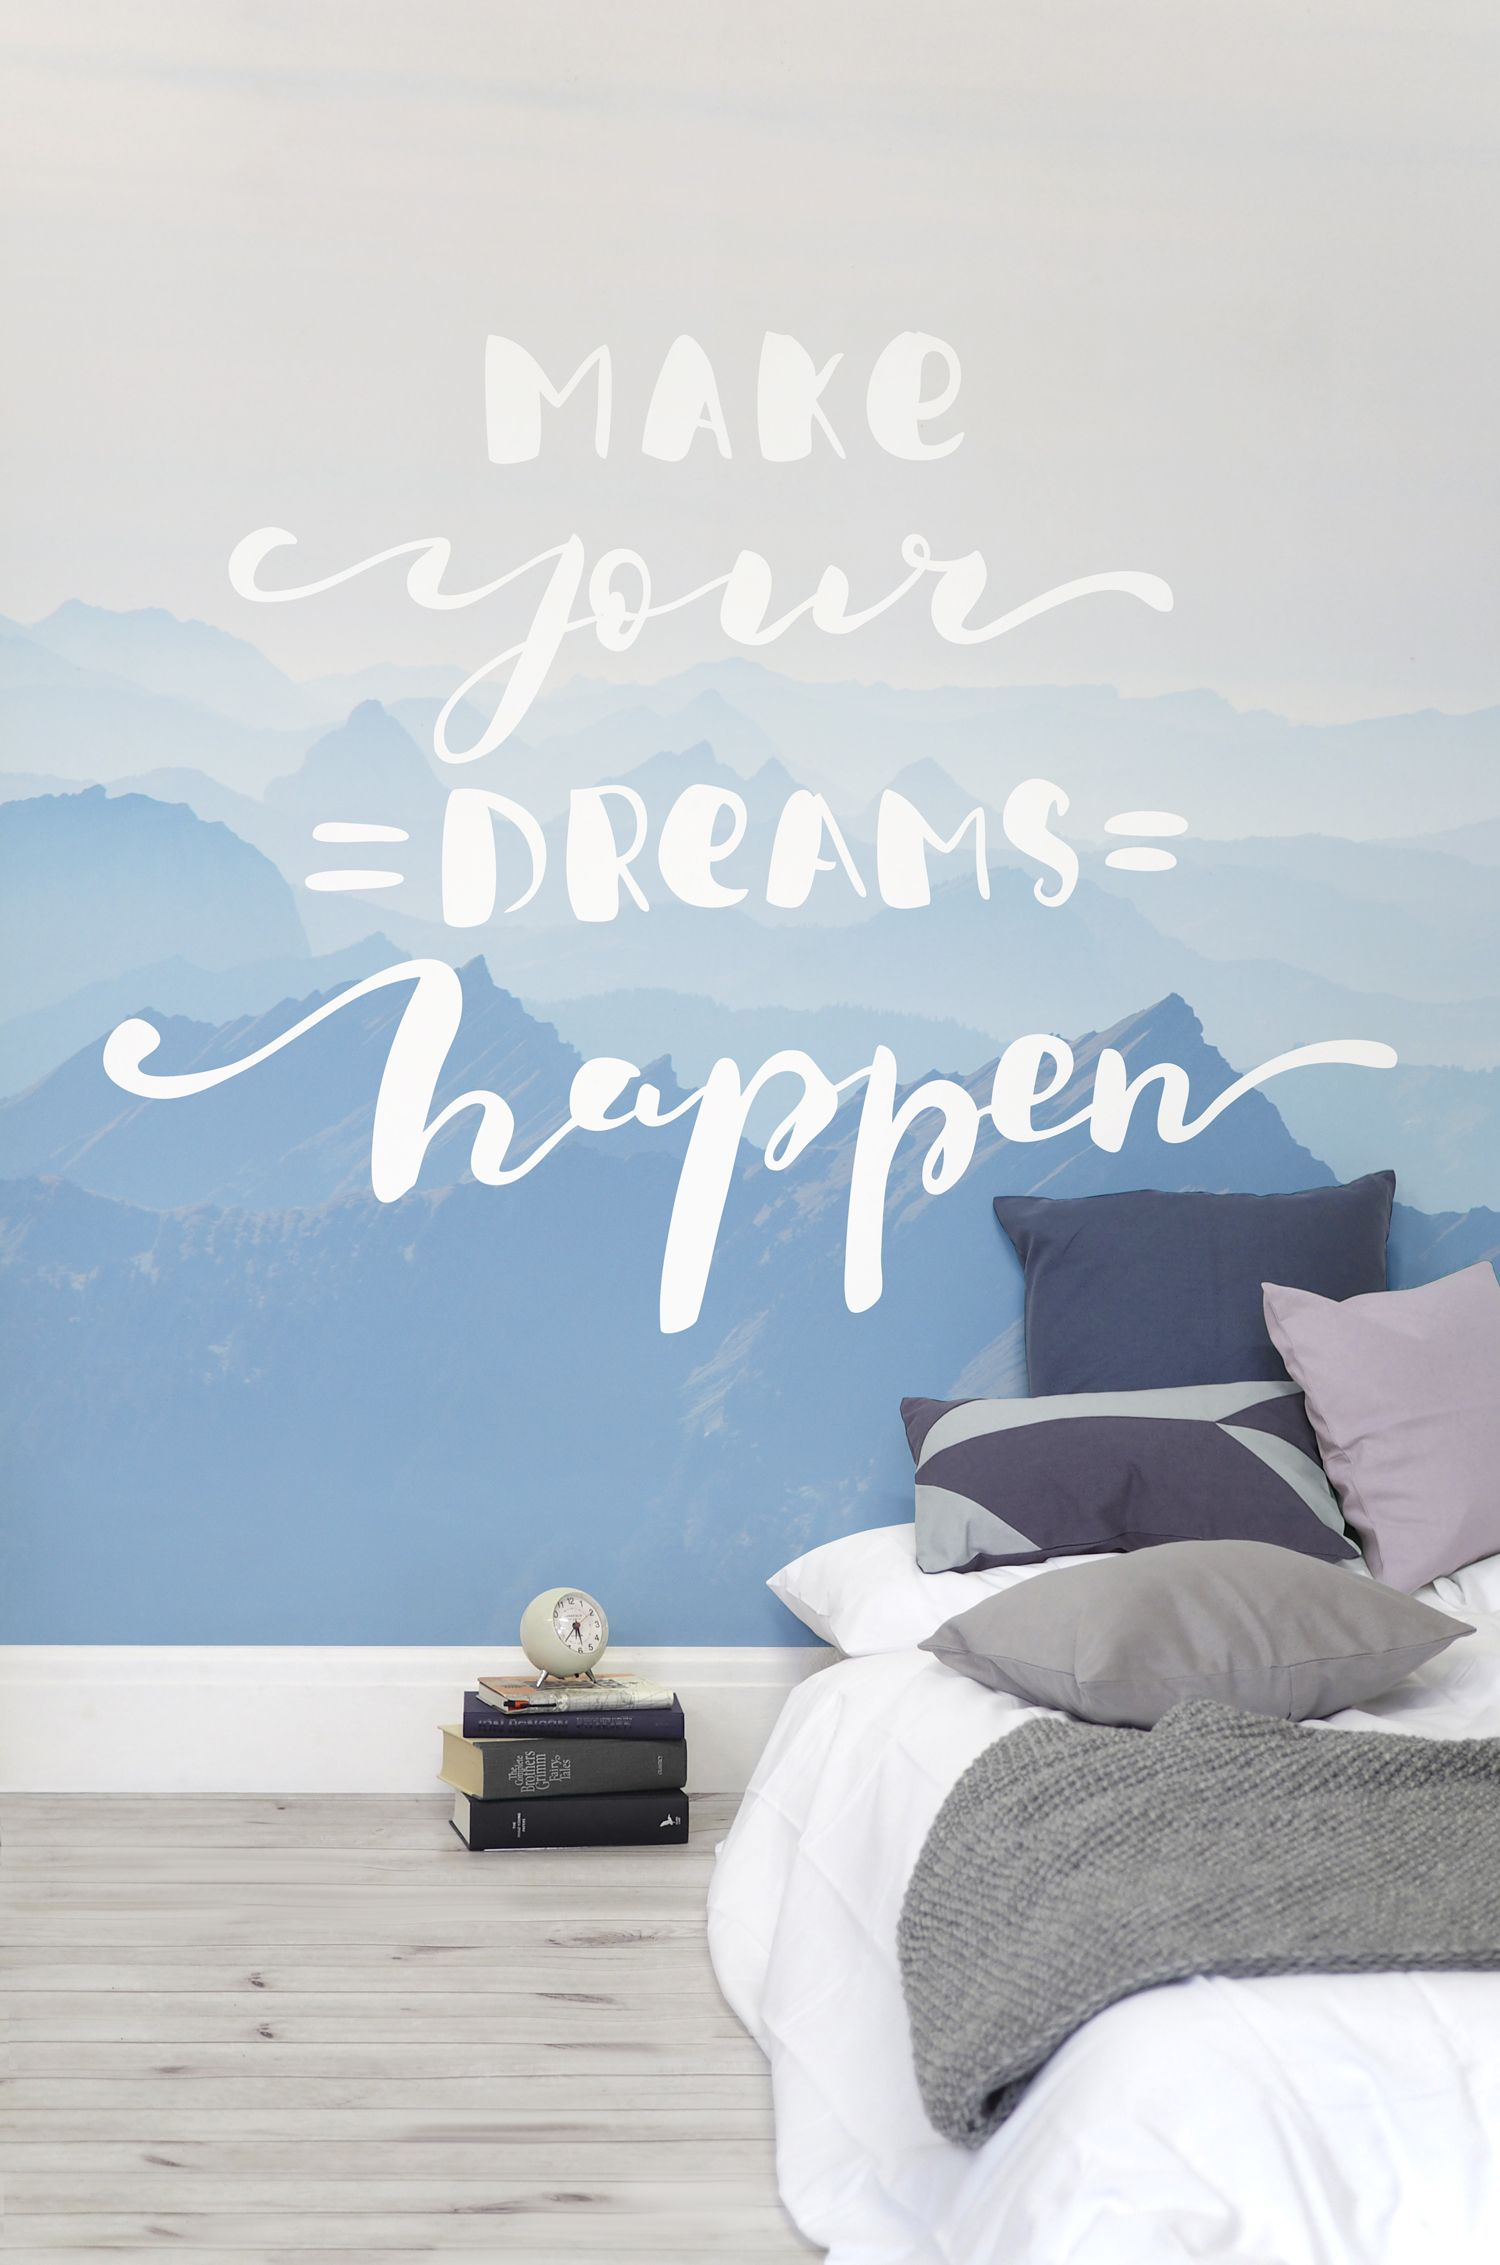 dreams happen inspirational quote wallpaper mural in 2019 wallgo one step ahead the dull wall stickers and spread good vibes with this quote wallpaper mural wonderful misty mountains sets the scene,